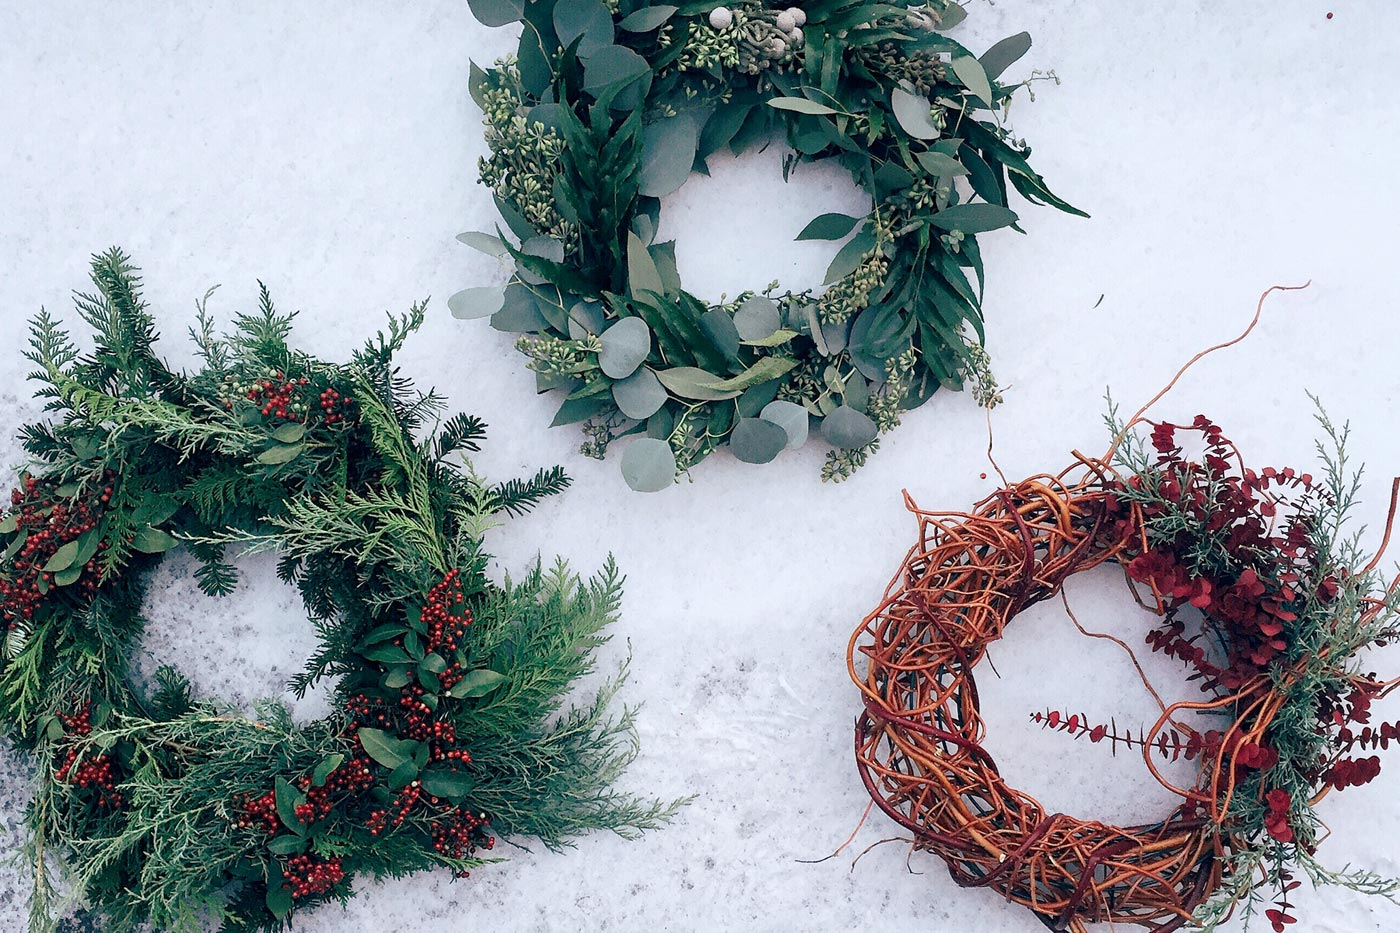 Make your own holiday wreaths